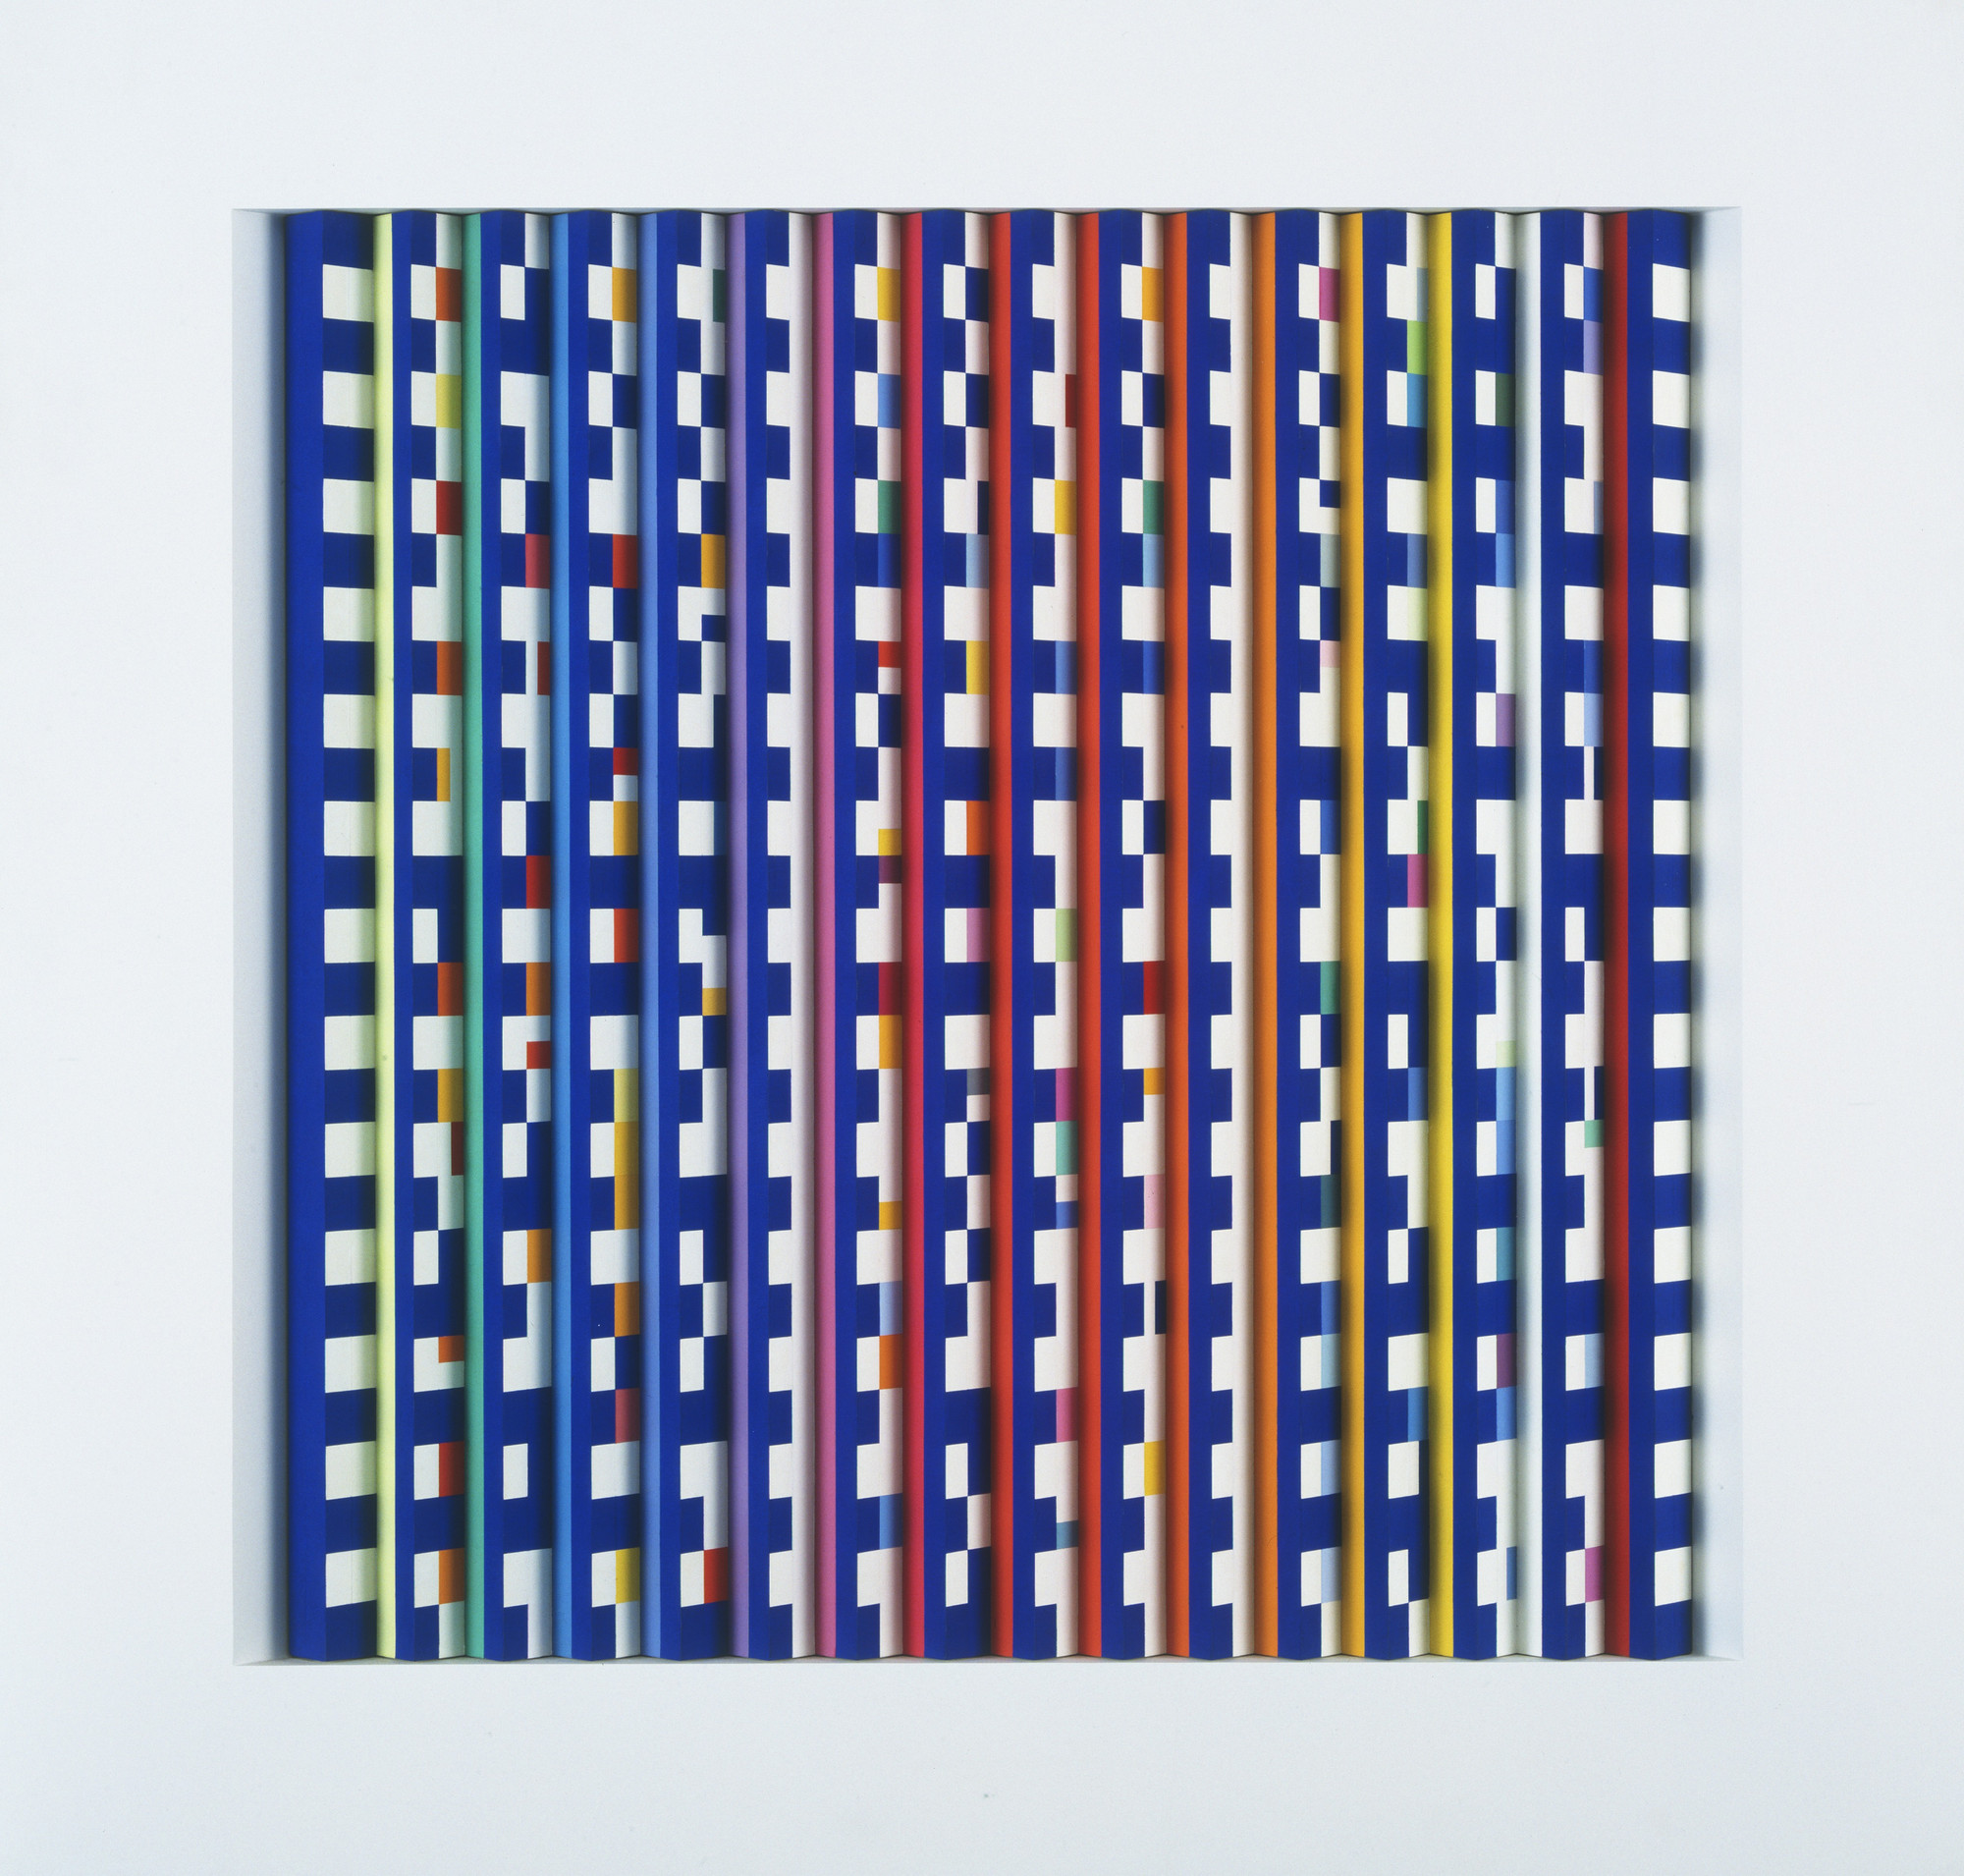 Agam (Yaacov Agam). Color and Monochrome - Line and Structure. 1962-87